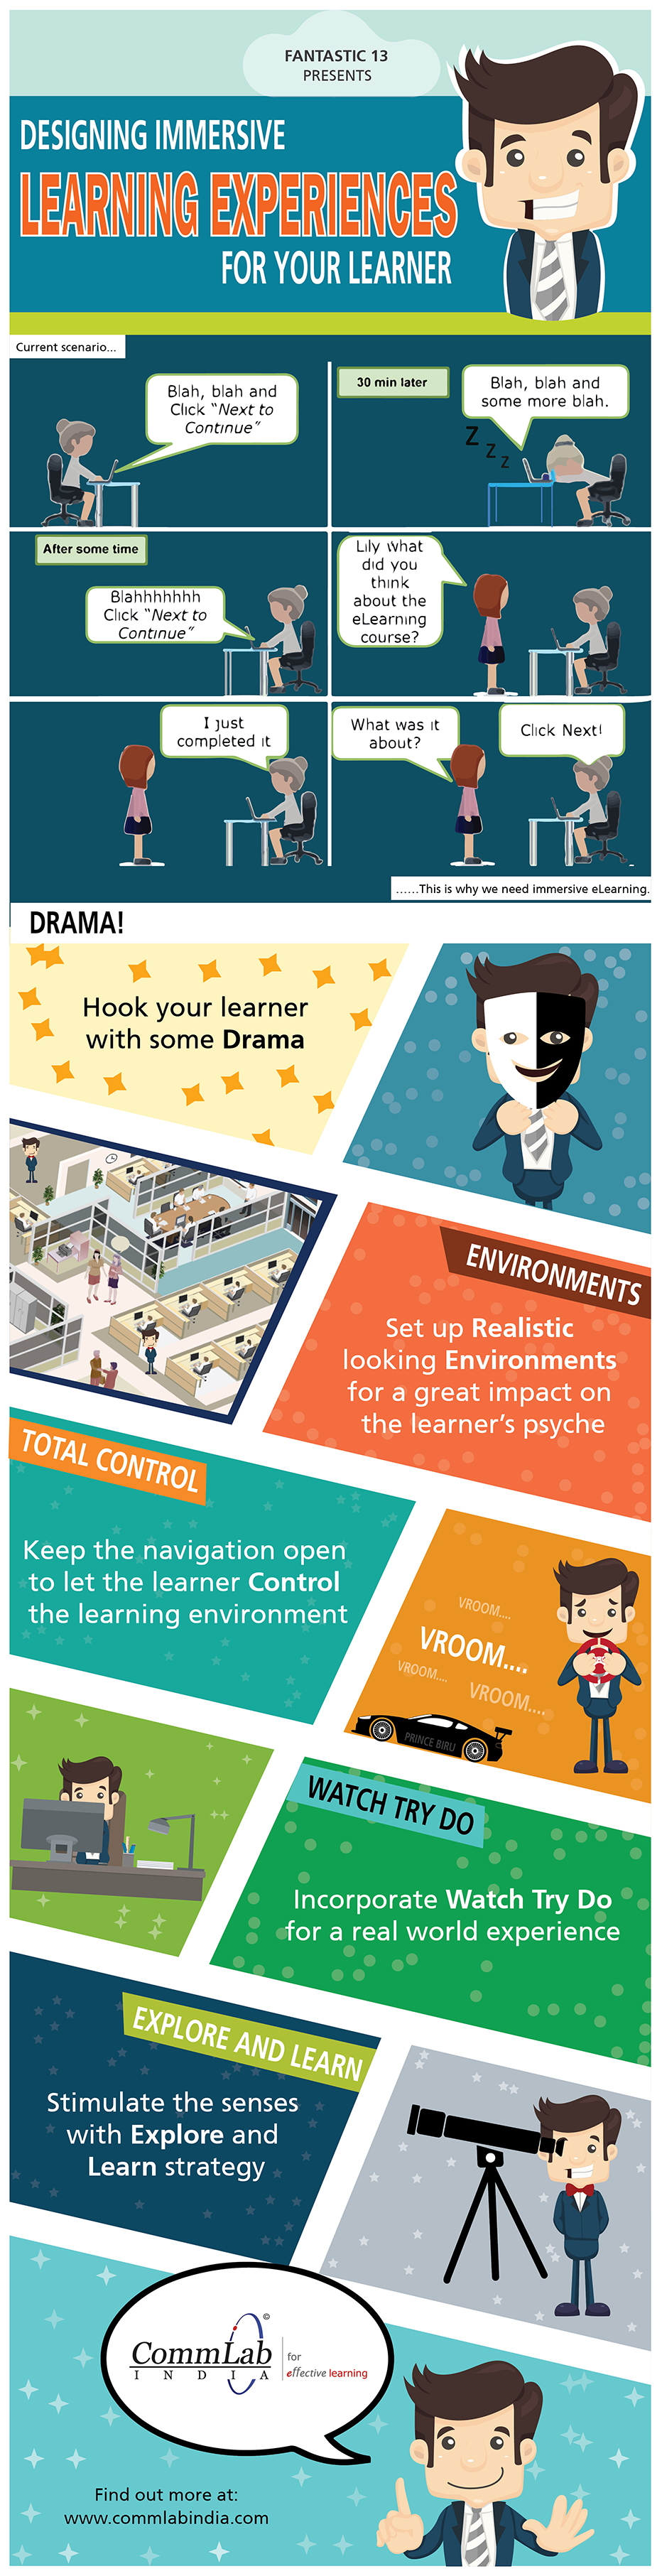 E-learning Design - Tips to Create Immersive Learning Experiences [Infographic]